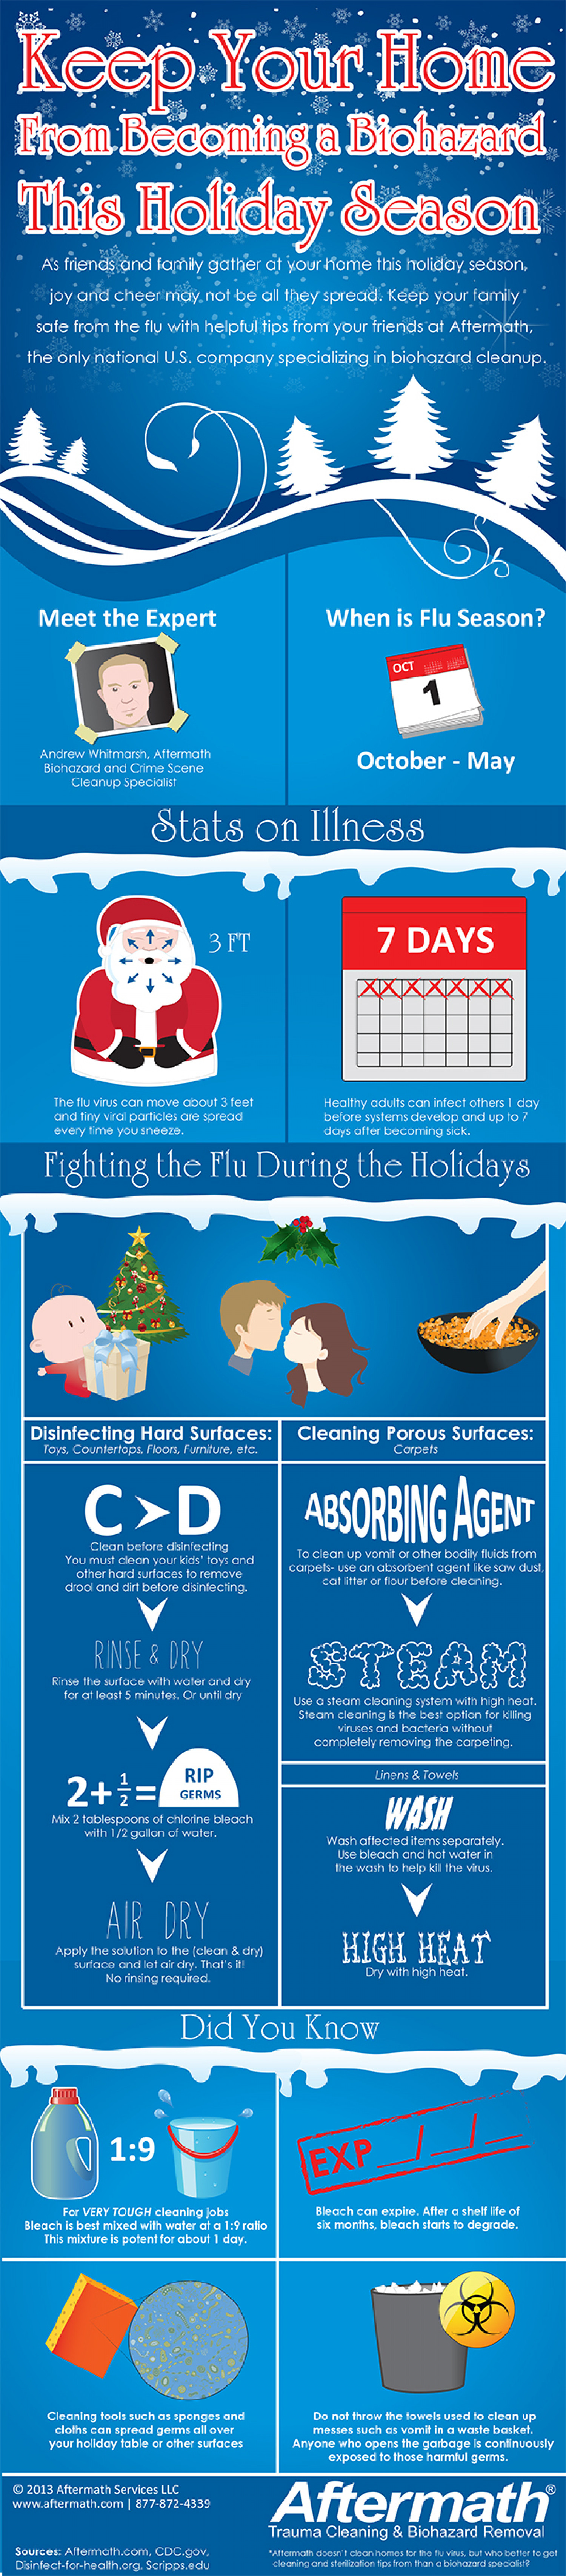 Fighting the Flu During the Holidays Infographic